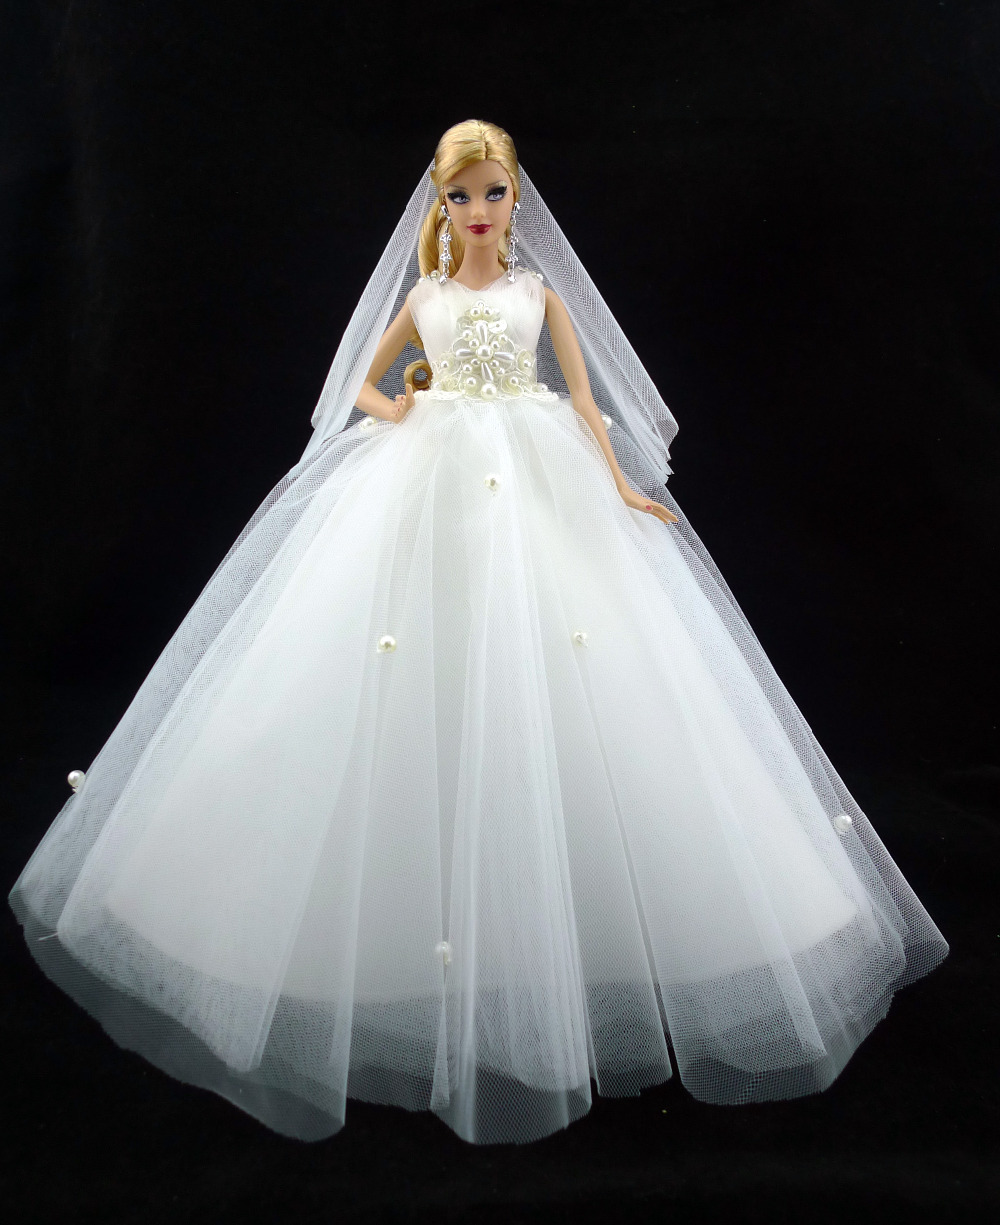 One Handmade Luxury Bride Wedding Dress With Pearls Veil Nobility Elegant Princess Gown Outfit